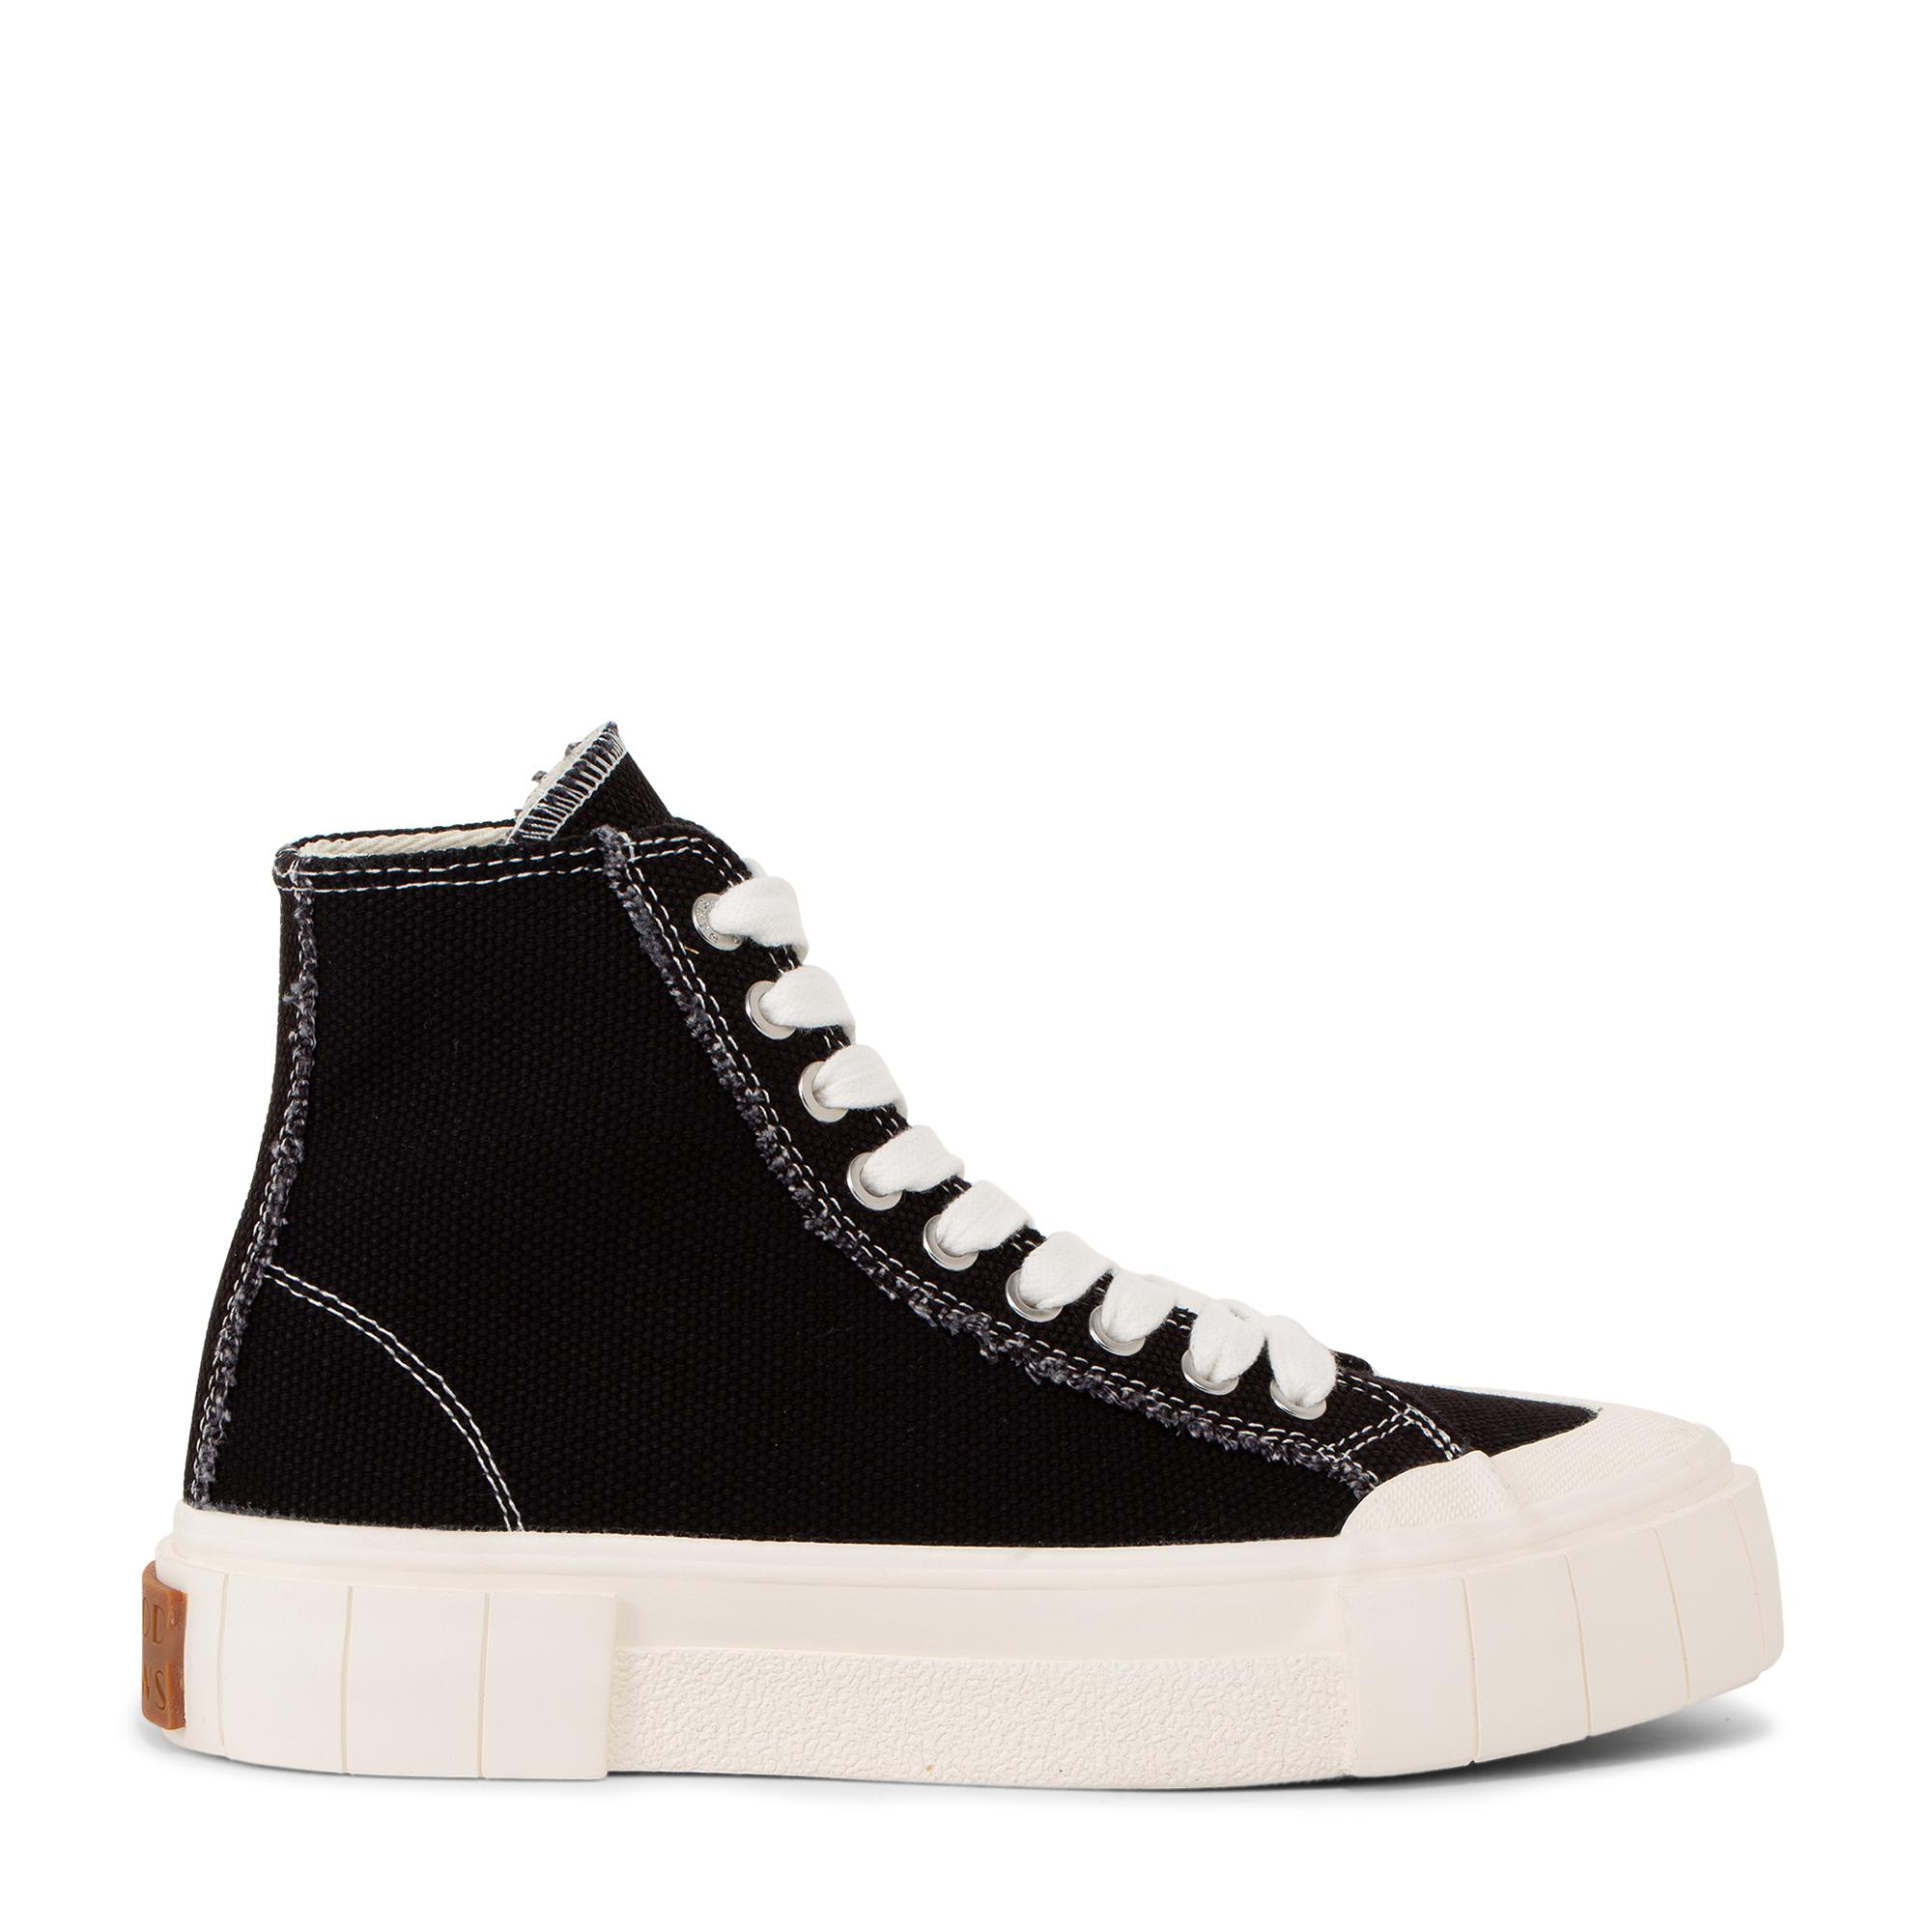 Palm Core sneakers